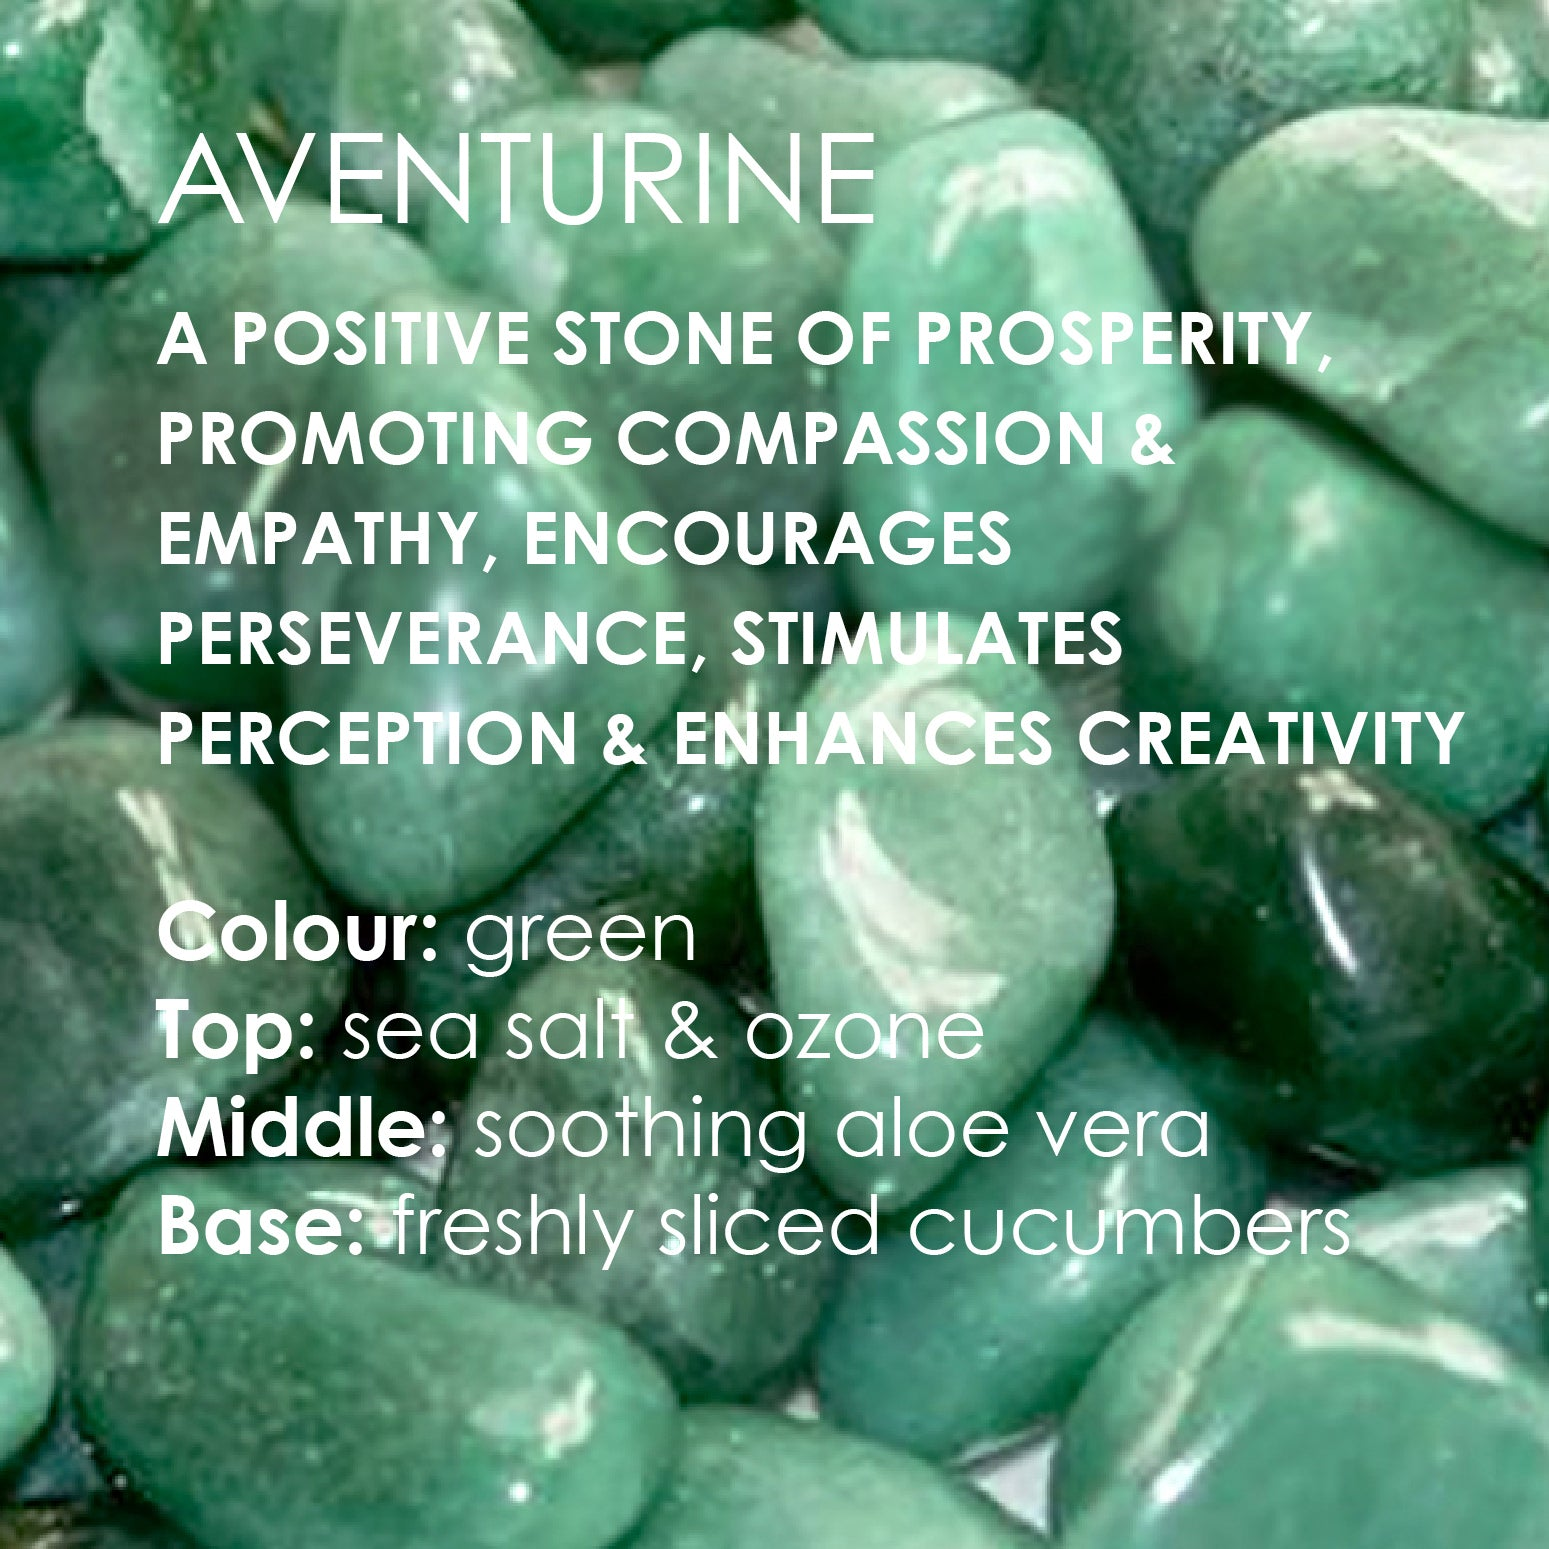 Image of Adventurine Candle card text with Adventurine stone background